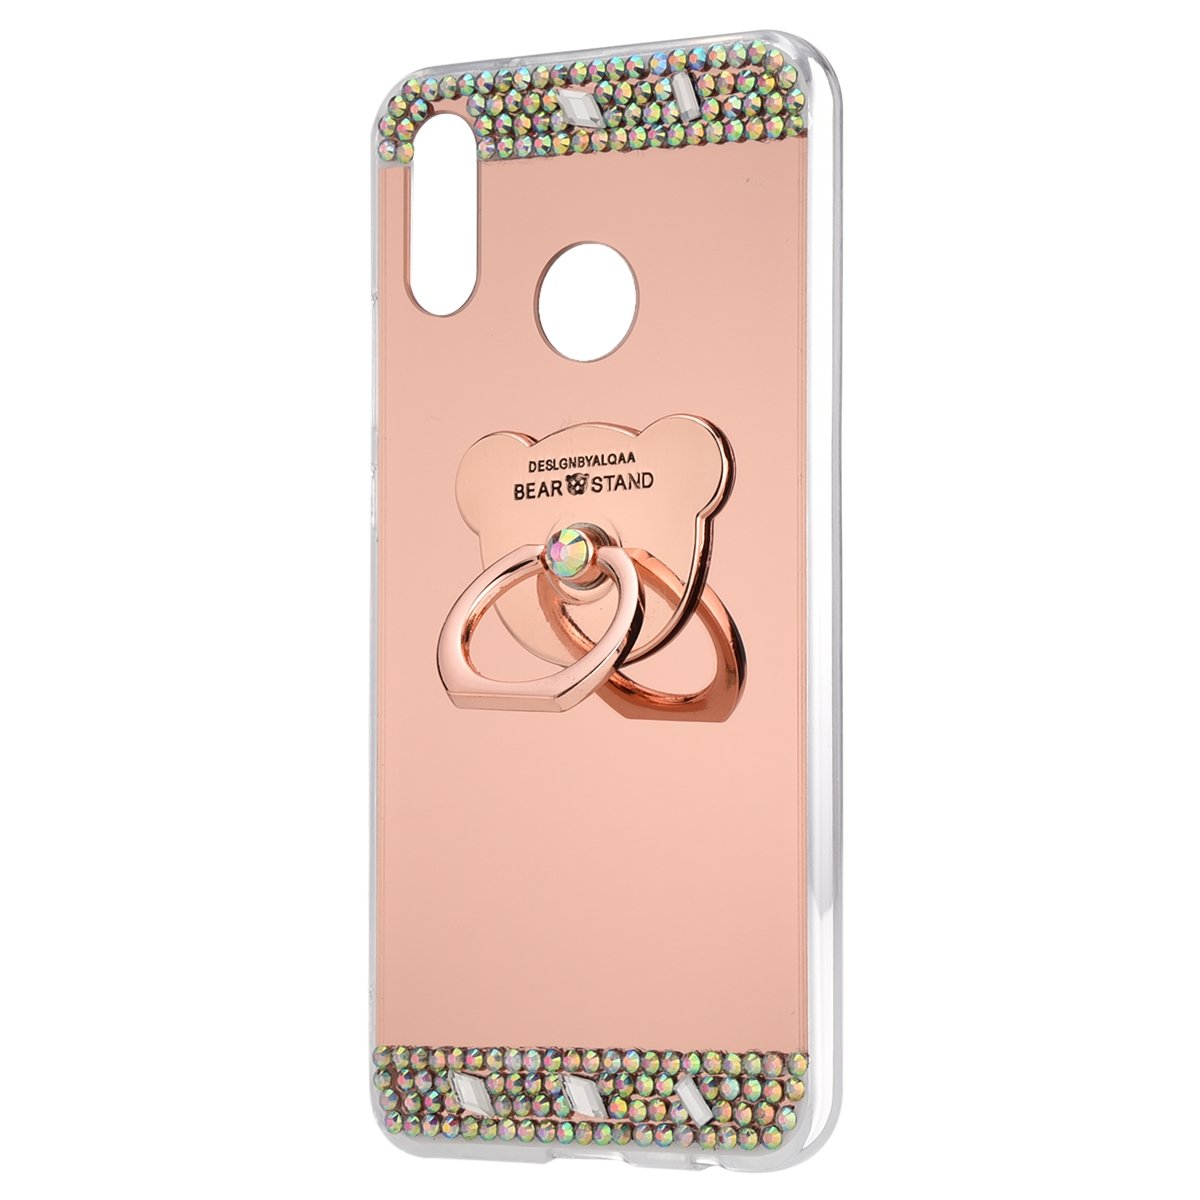 Amazon.com: for Huawei P20 Lite Case,Huawei P20 Lite Surakey Luxury Mirror Case Soft TPU Silicone Bling Diamond Glitter Crystal Rhinestone Cover Protective ...